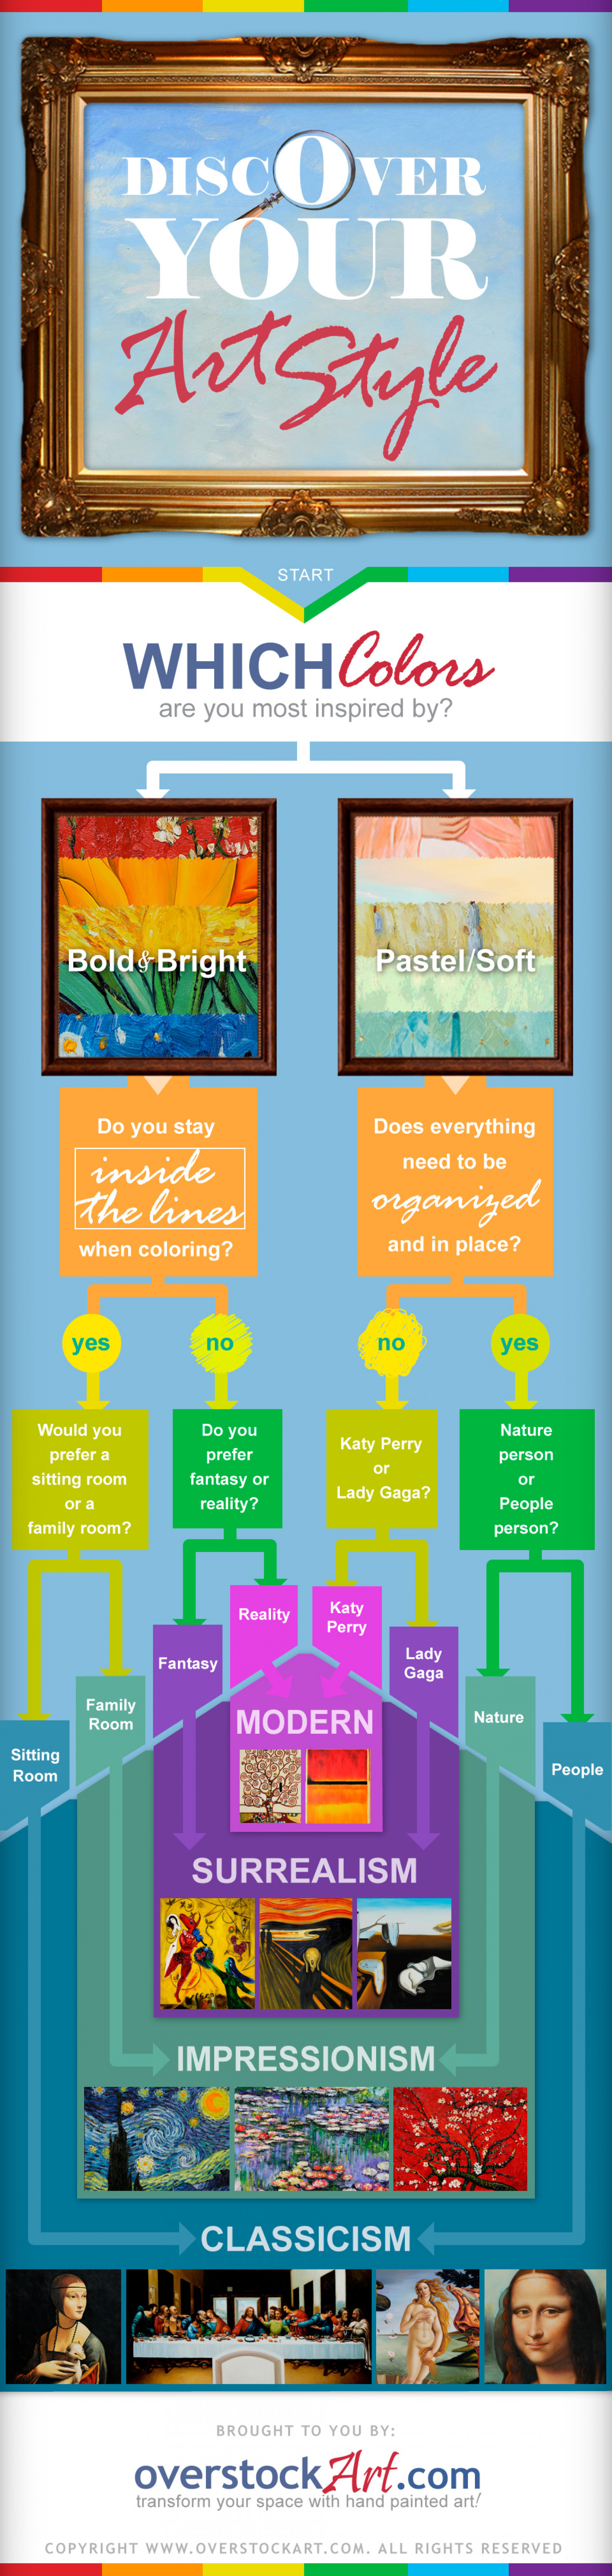 Discover your Art Style Infographic